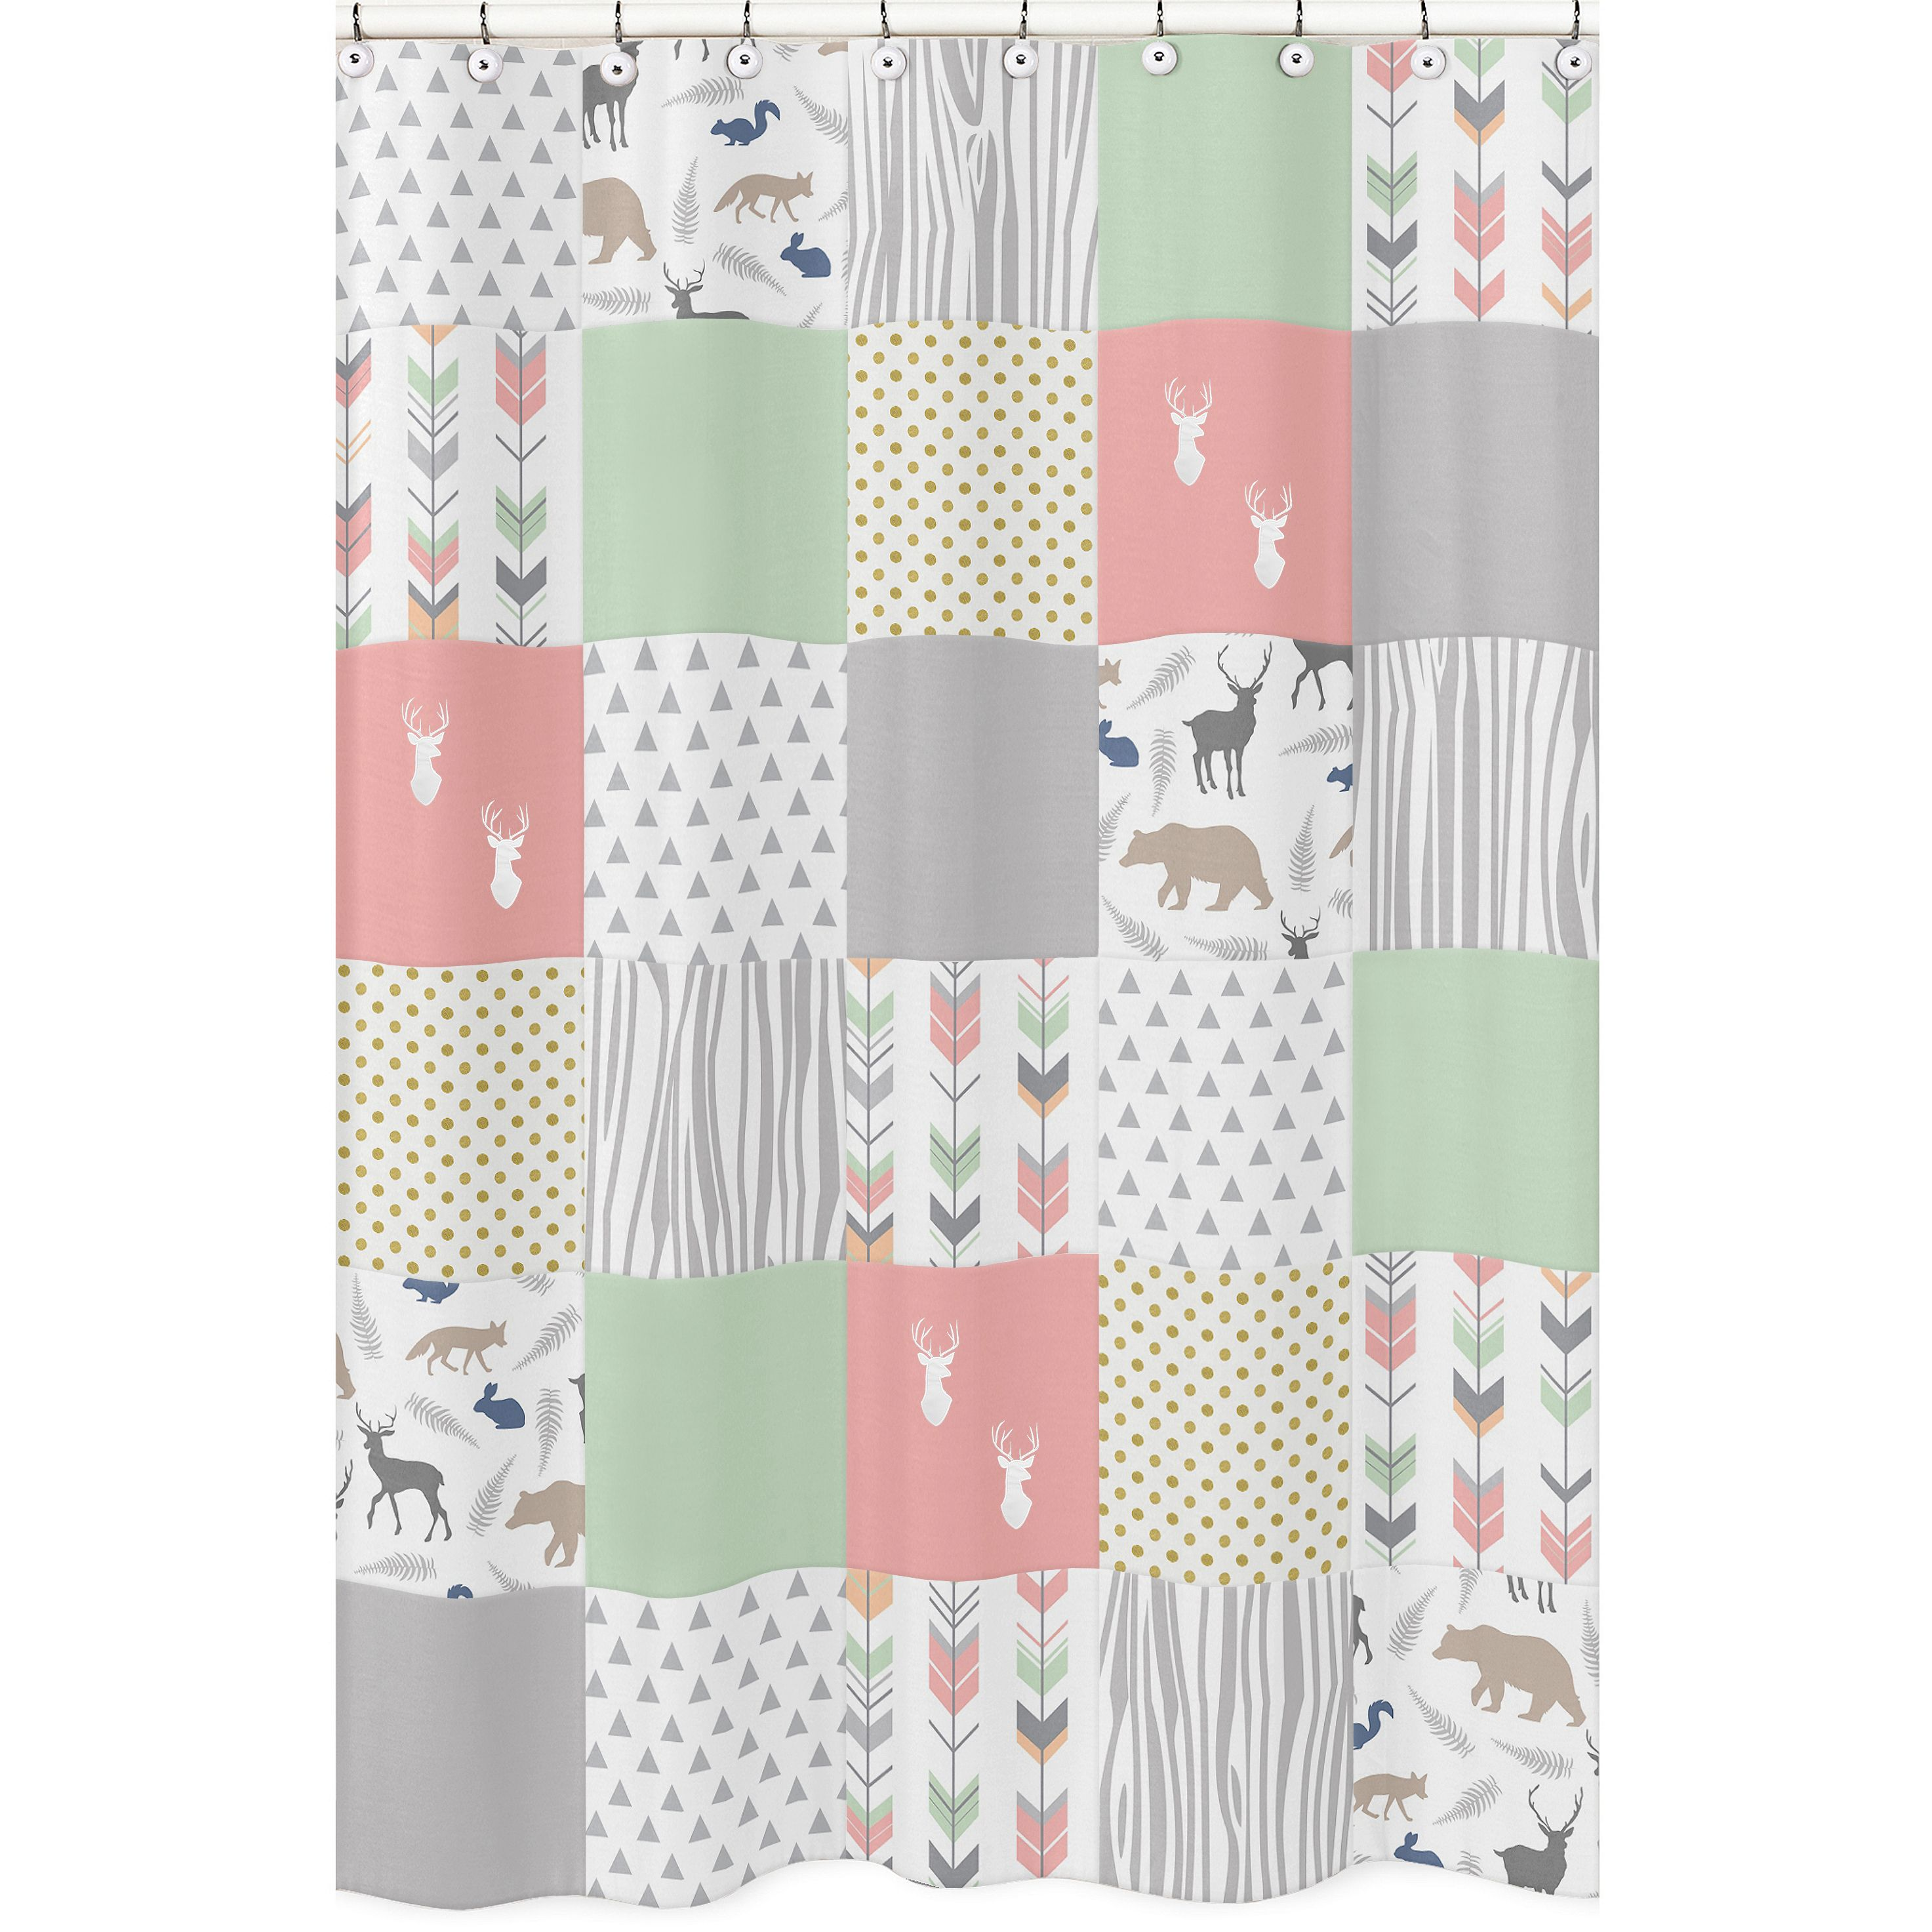 Shower curtain for the coral and mint woodsy collection by sweet